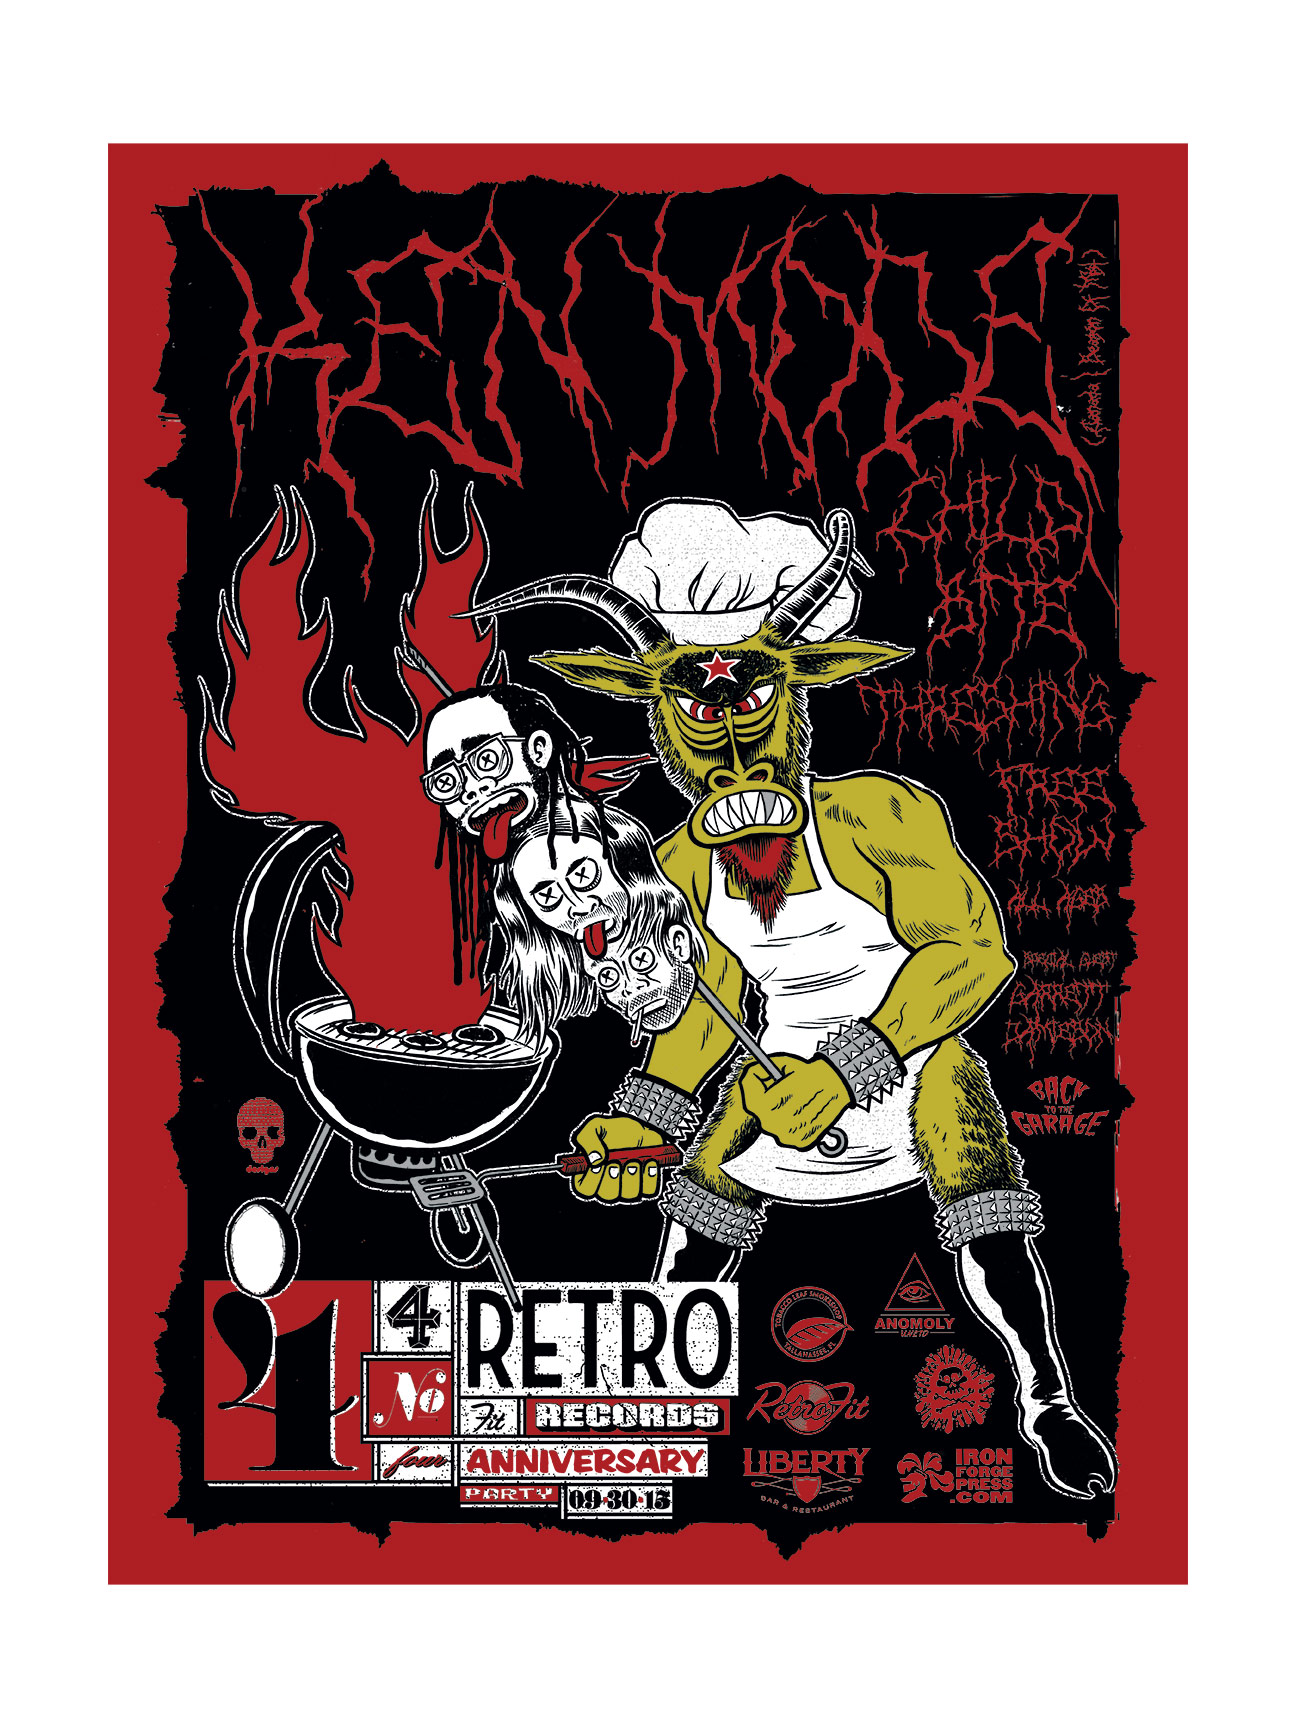 RETROFIT RECORDS 4 YEAR ANNIVERSARY POSTER